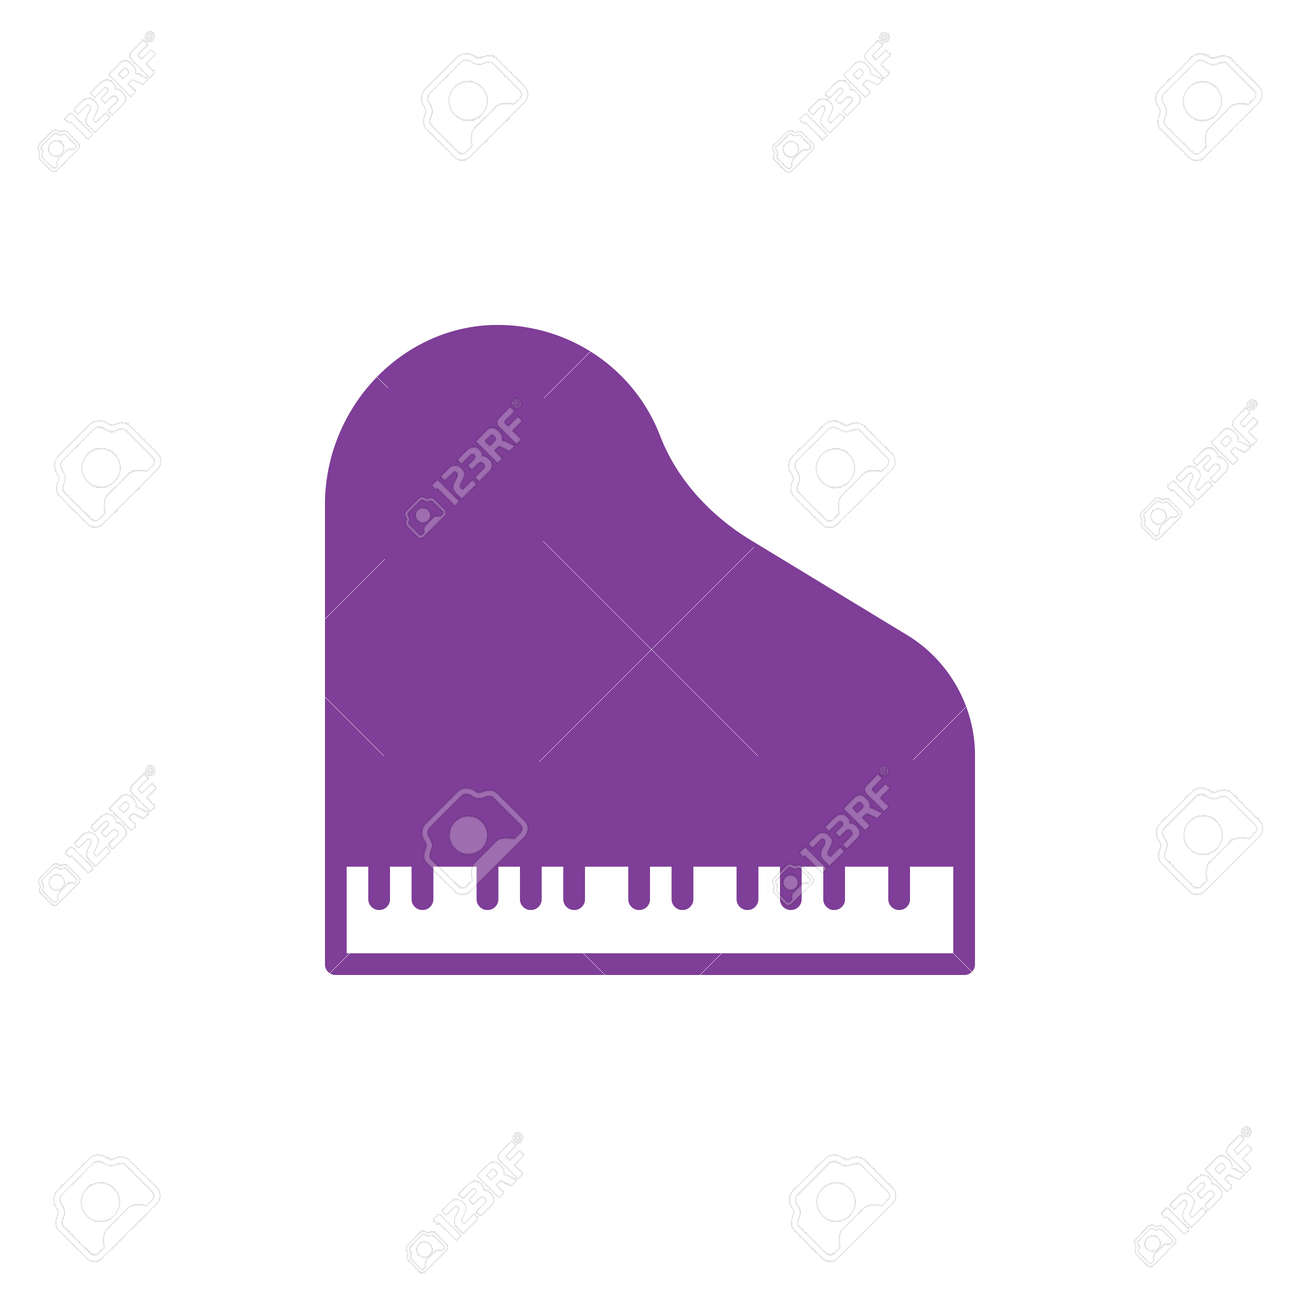 Grand Piano Icon Vector Filled Flat Sign Solid Colorful Pictogram Isolated On White